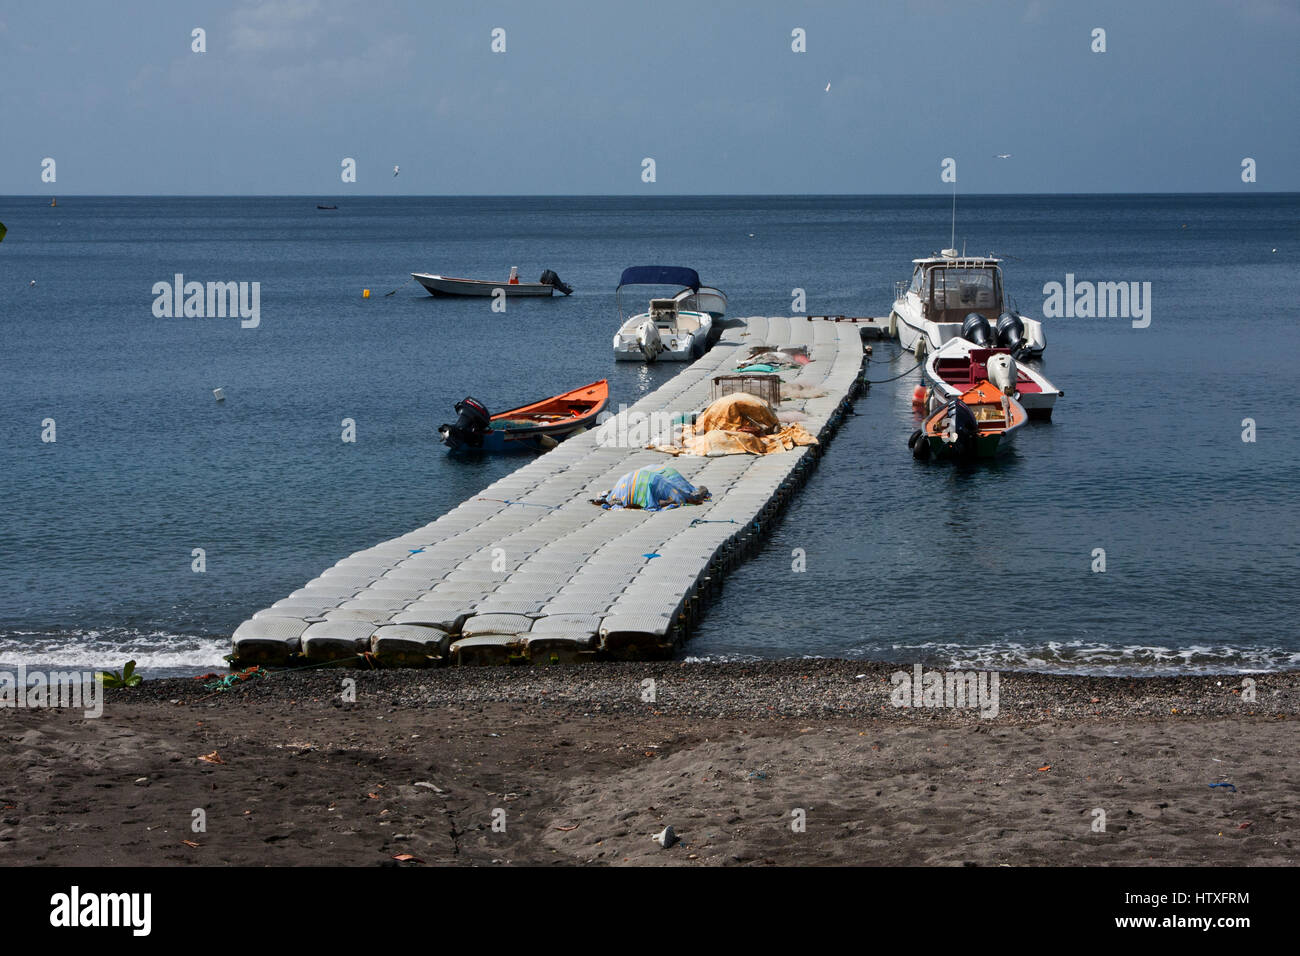 Martinique, Martinique, Le Carbet, beach town and fishing port, east coast near St Pierre, - Stock Image